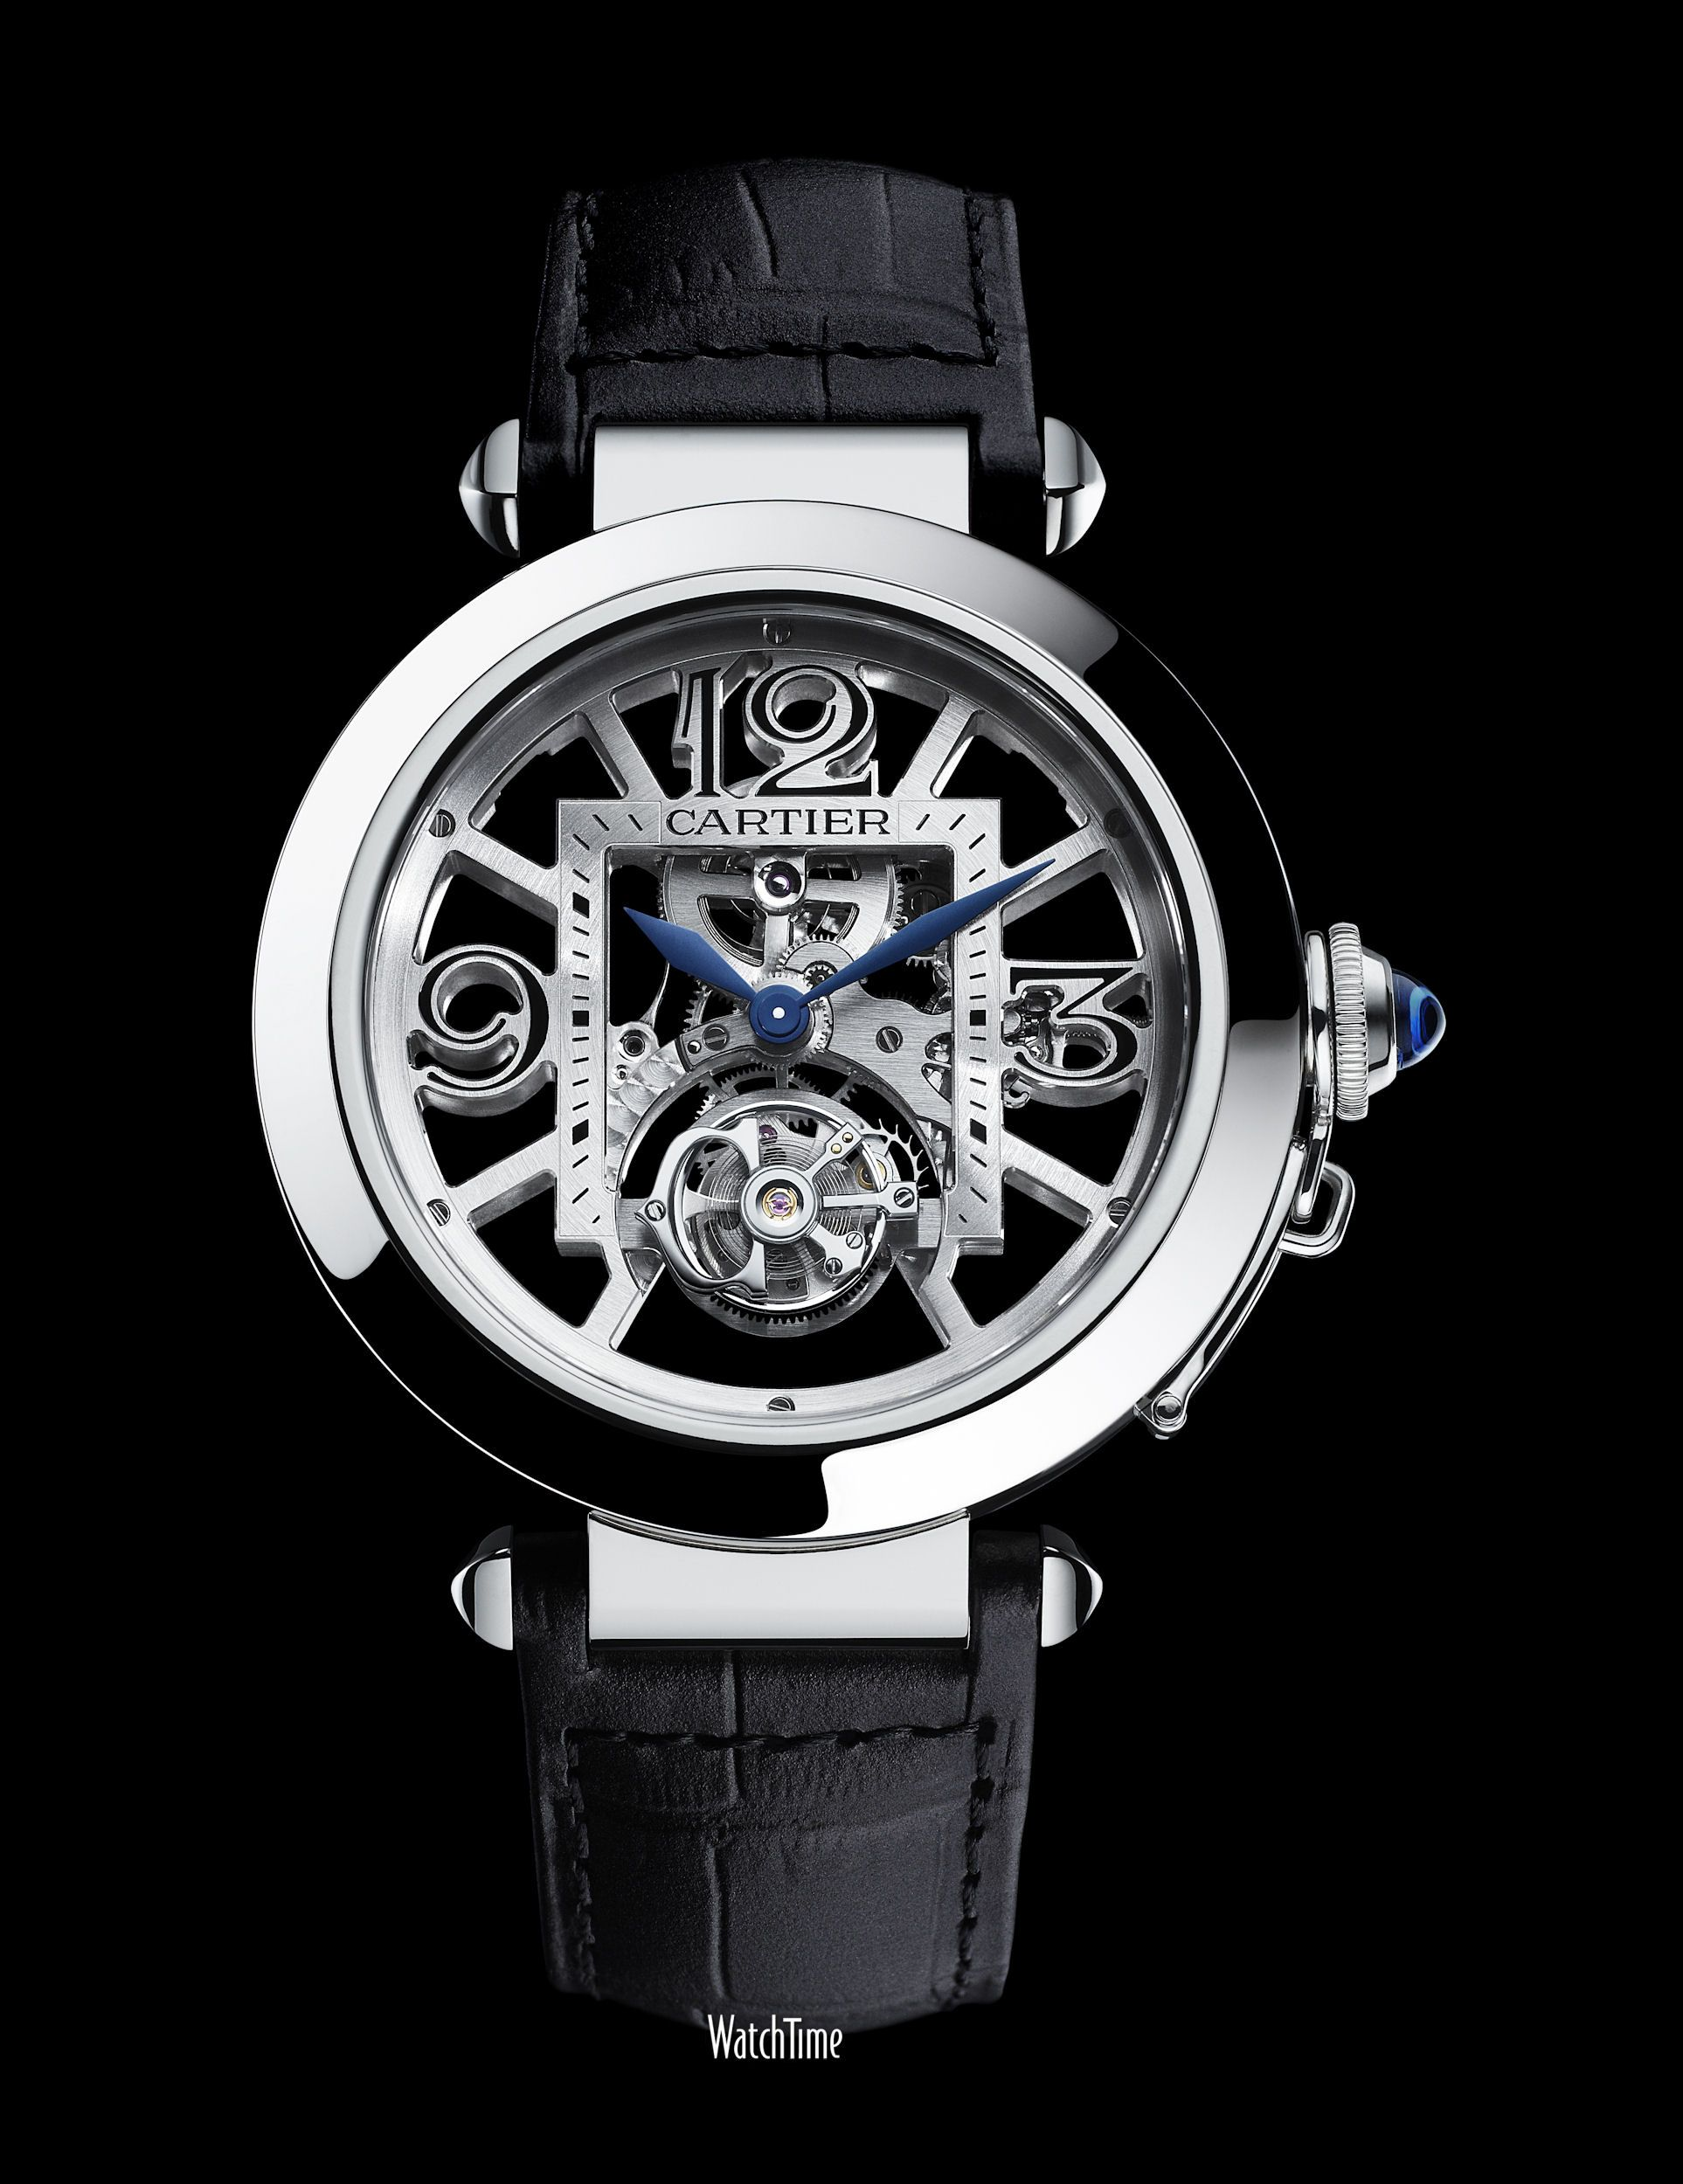 edouard flying fleurier sihh watches amadeo tourbillon bovet